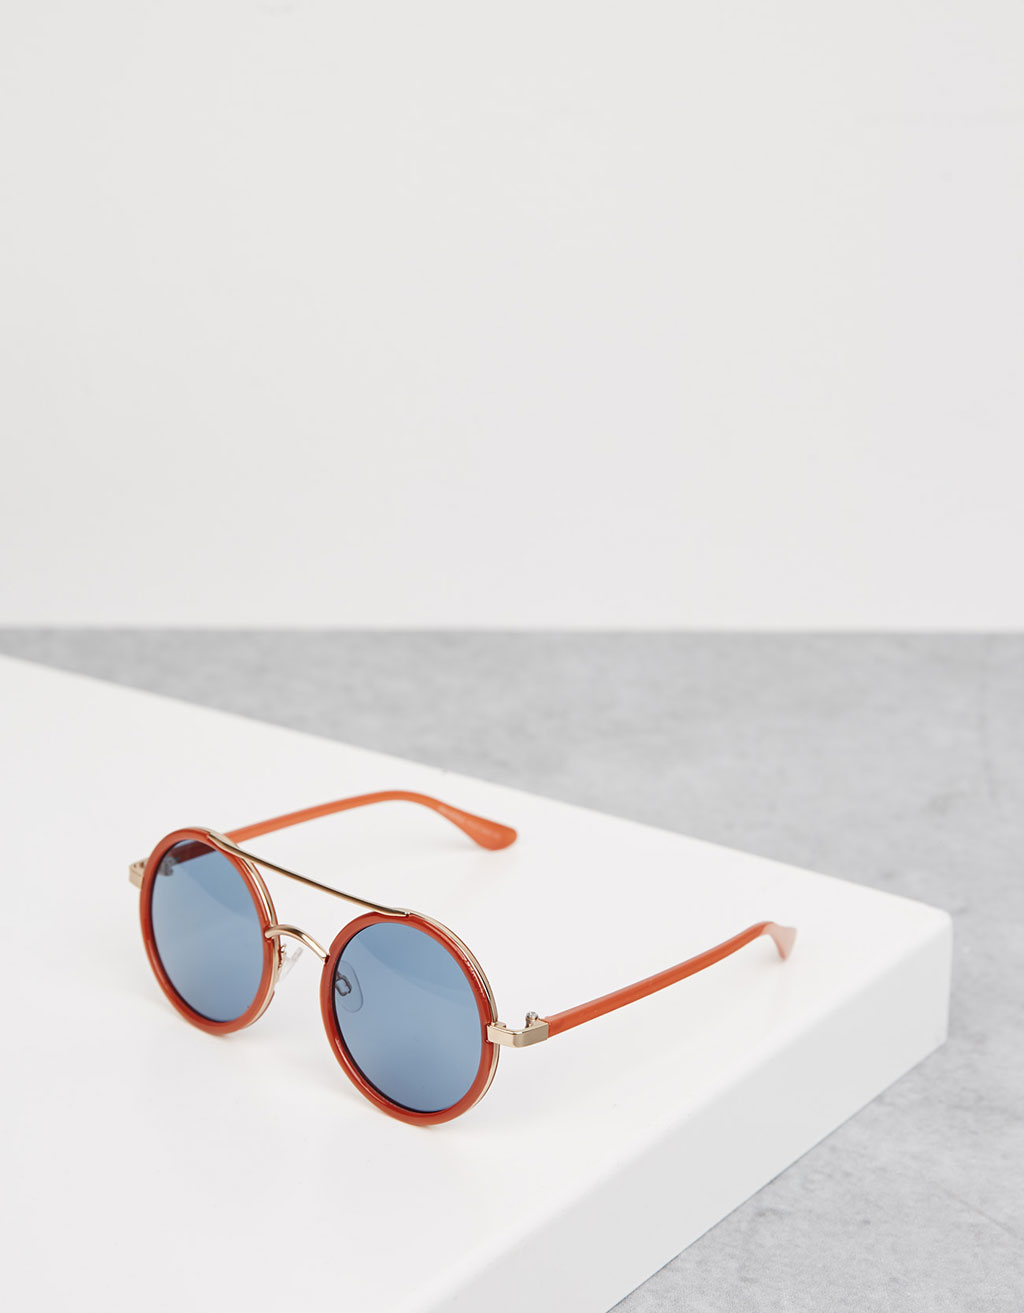 Round sunglasses with red frame